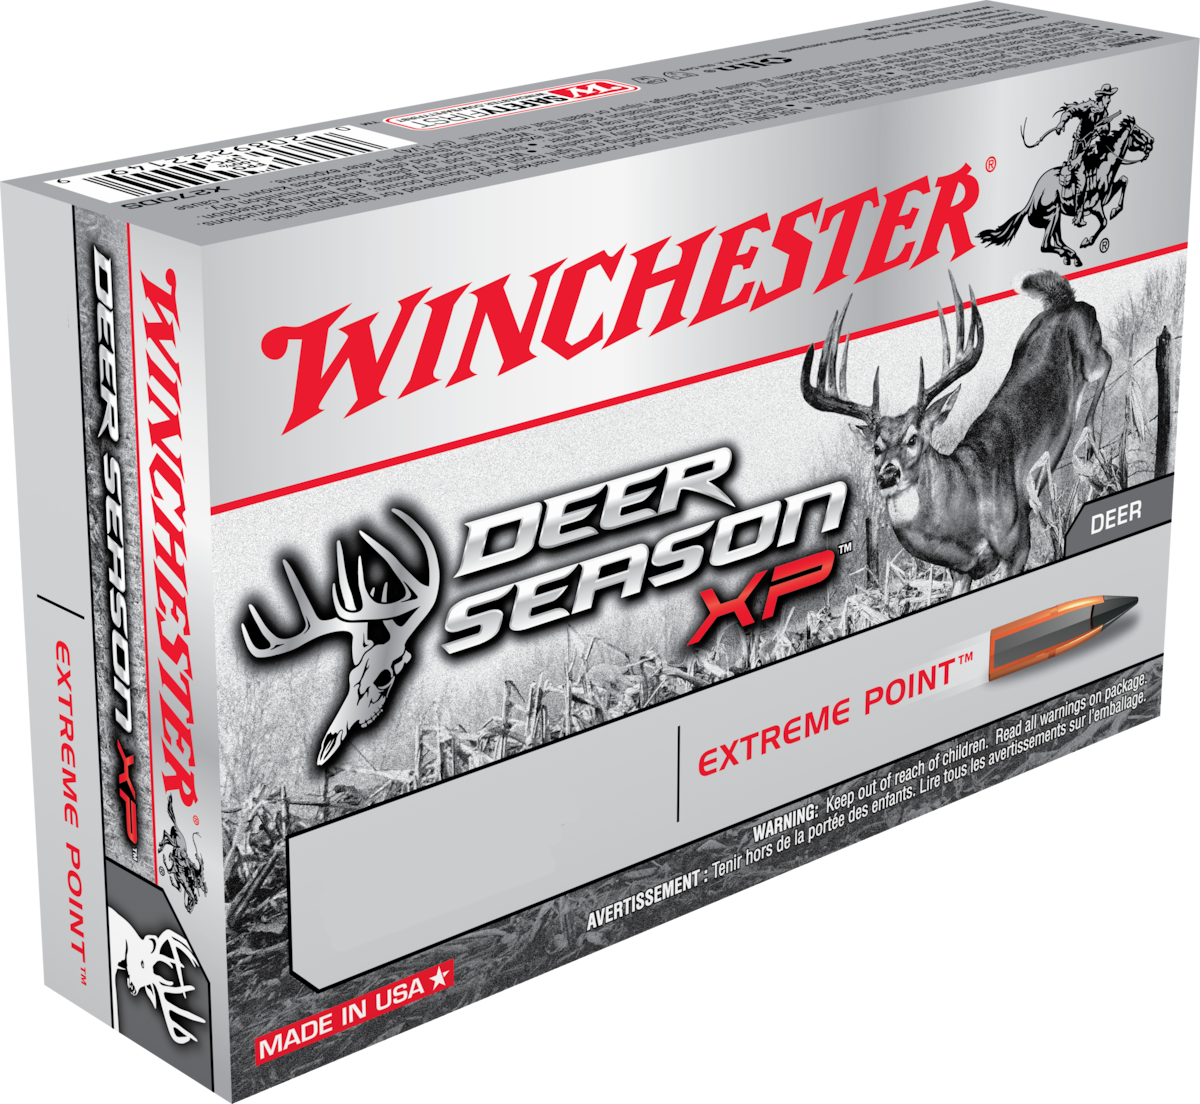 WINCHESTER DEER SEASON XP